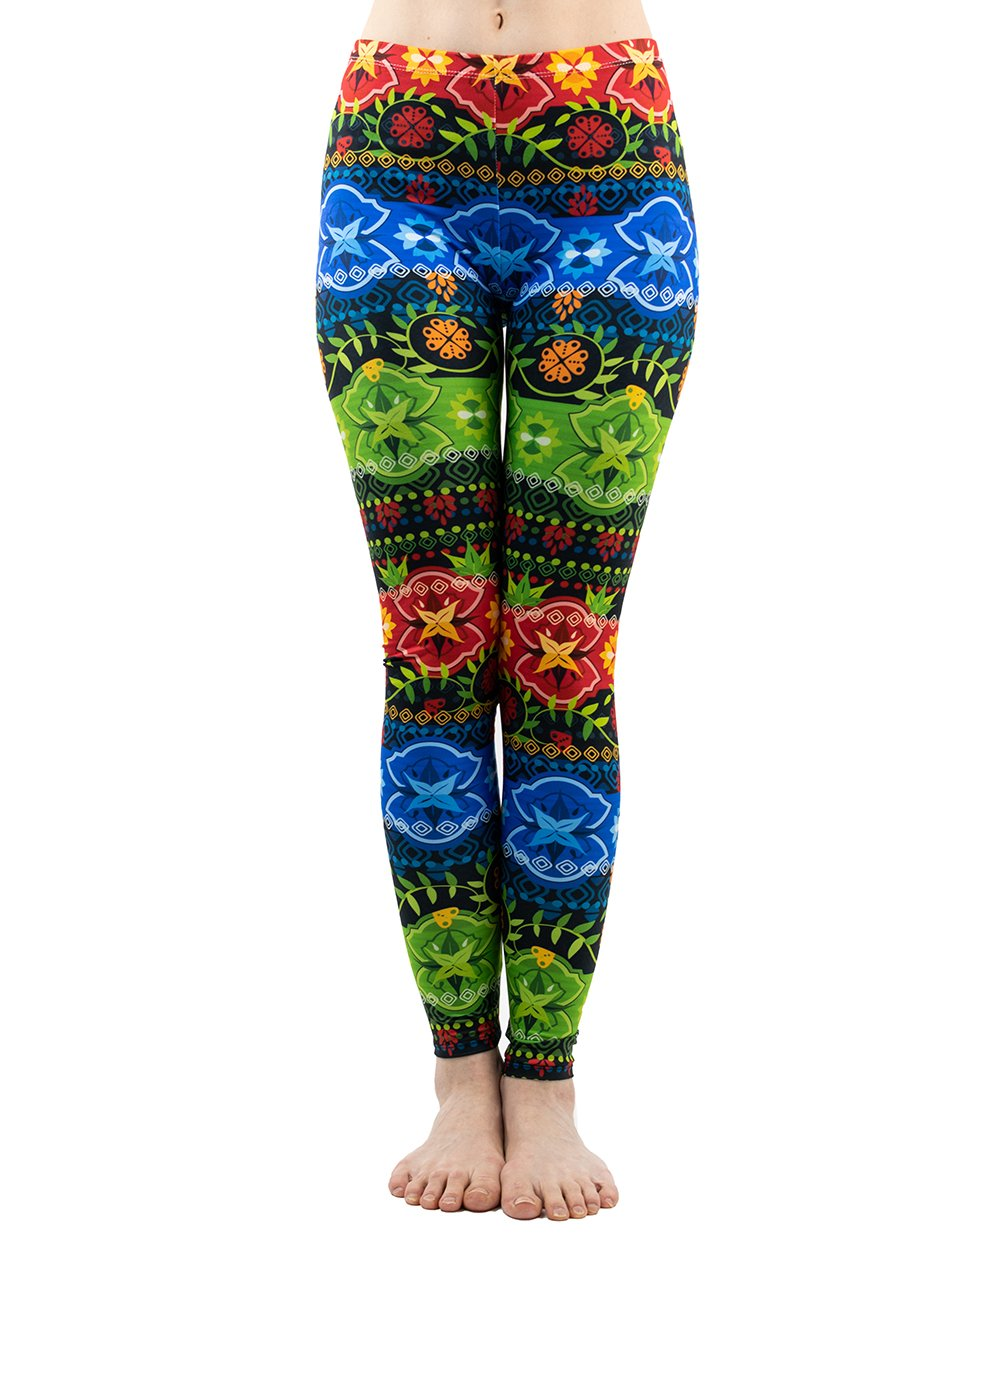 PINK PLOT Women's Yoga Gym Popular Printed Buttery Soft Leggings Fashion Thin Pants 20+Colors (Tropical Aztec, One Size-Fit XS-L)